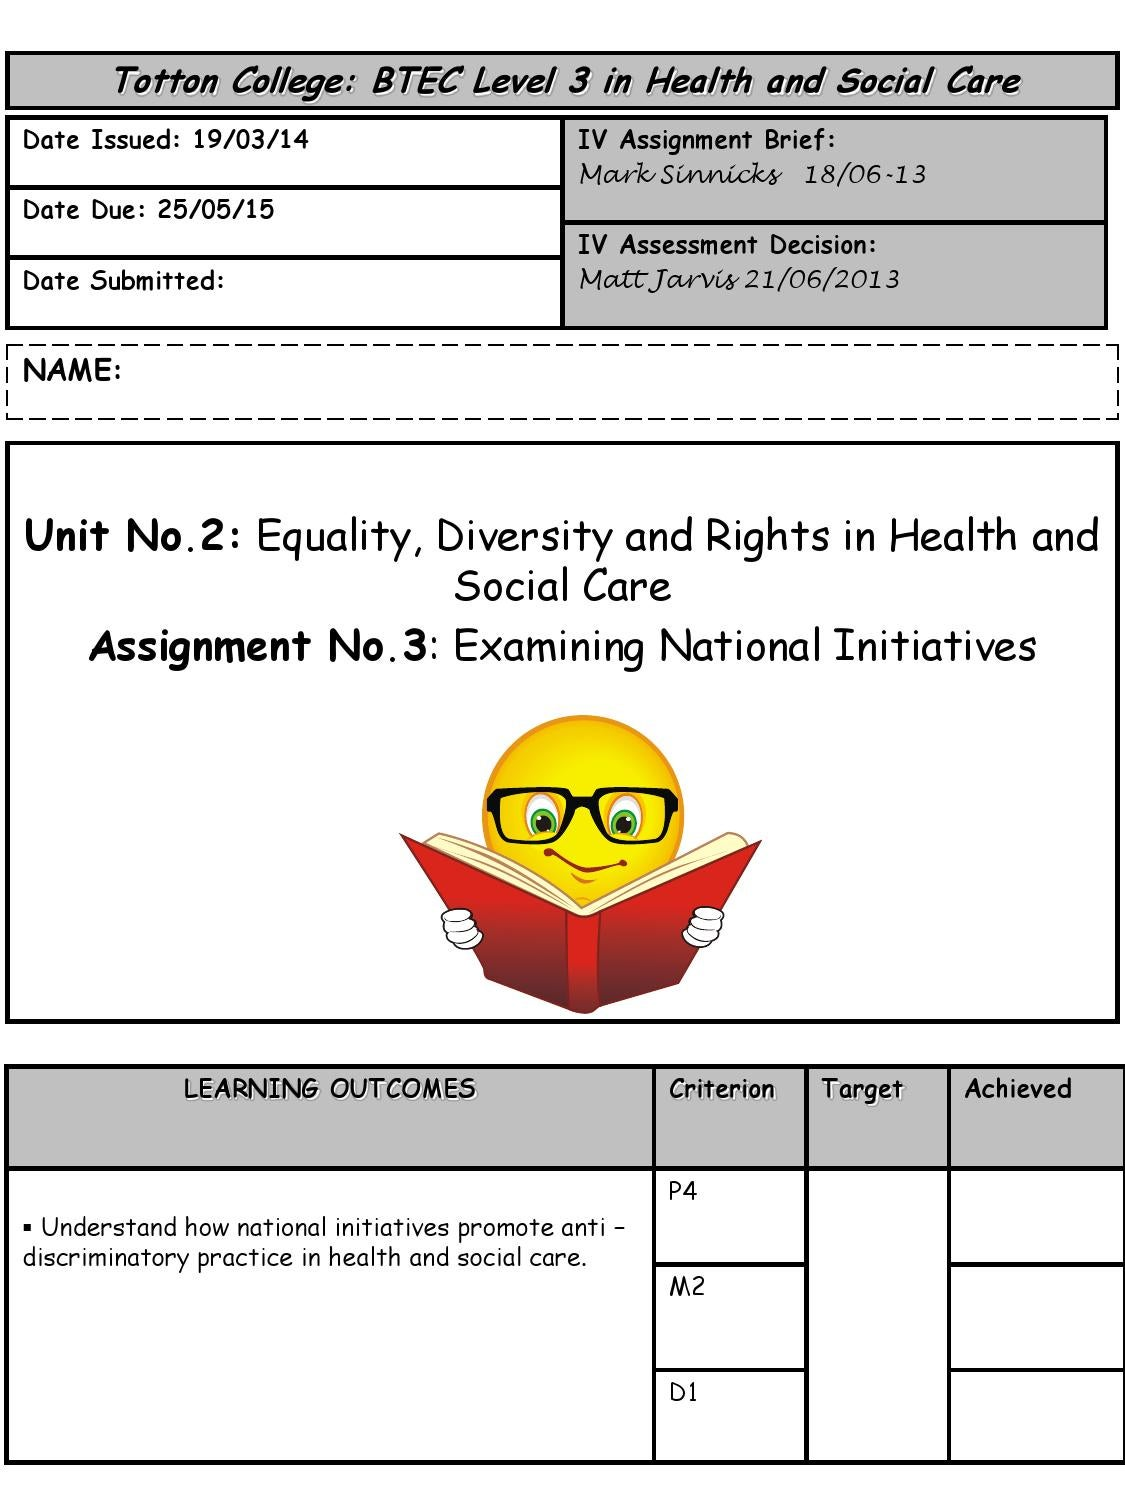 equality diversity and rights d1 Equality, diversity and rights patients/clients are people, and people have rights  they have the right to be treated fairly and with dignity and respect, regardless.